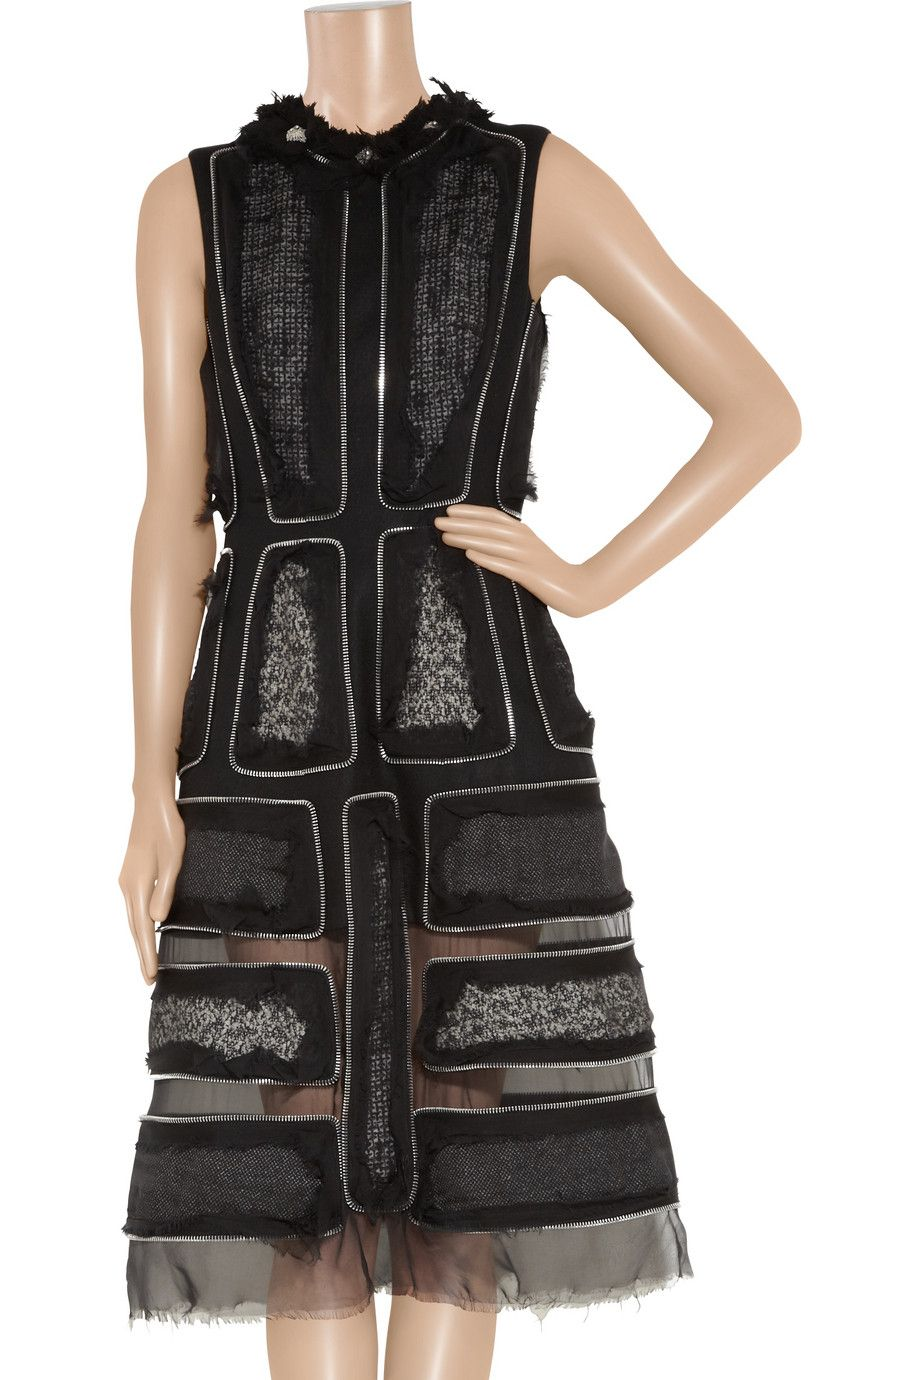 """Alexander McQueen  Zip-trimmed tweed and wool-felt dress  Was $8,795 Now $4,397.50 50% OFF        Editor's notes        Details      Size & fit    """"I was thinking about an ice queen,"""" said designer Sarah Burton of her muse for fall's dramatic Alexander McQueen collection. Tweed, wool-felt and silk-chiffon are combined with breathtaking workmanship to create this exquisite dress. Frayed edges give a raw finish - complement the effect with a dramatic belt and heels."""